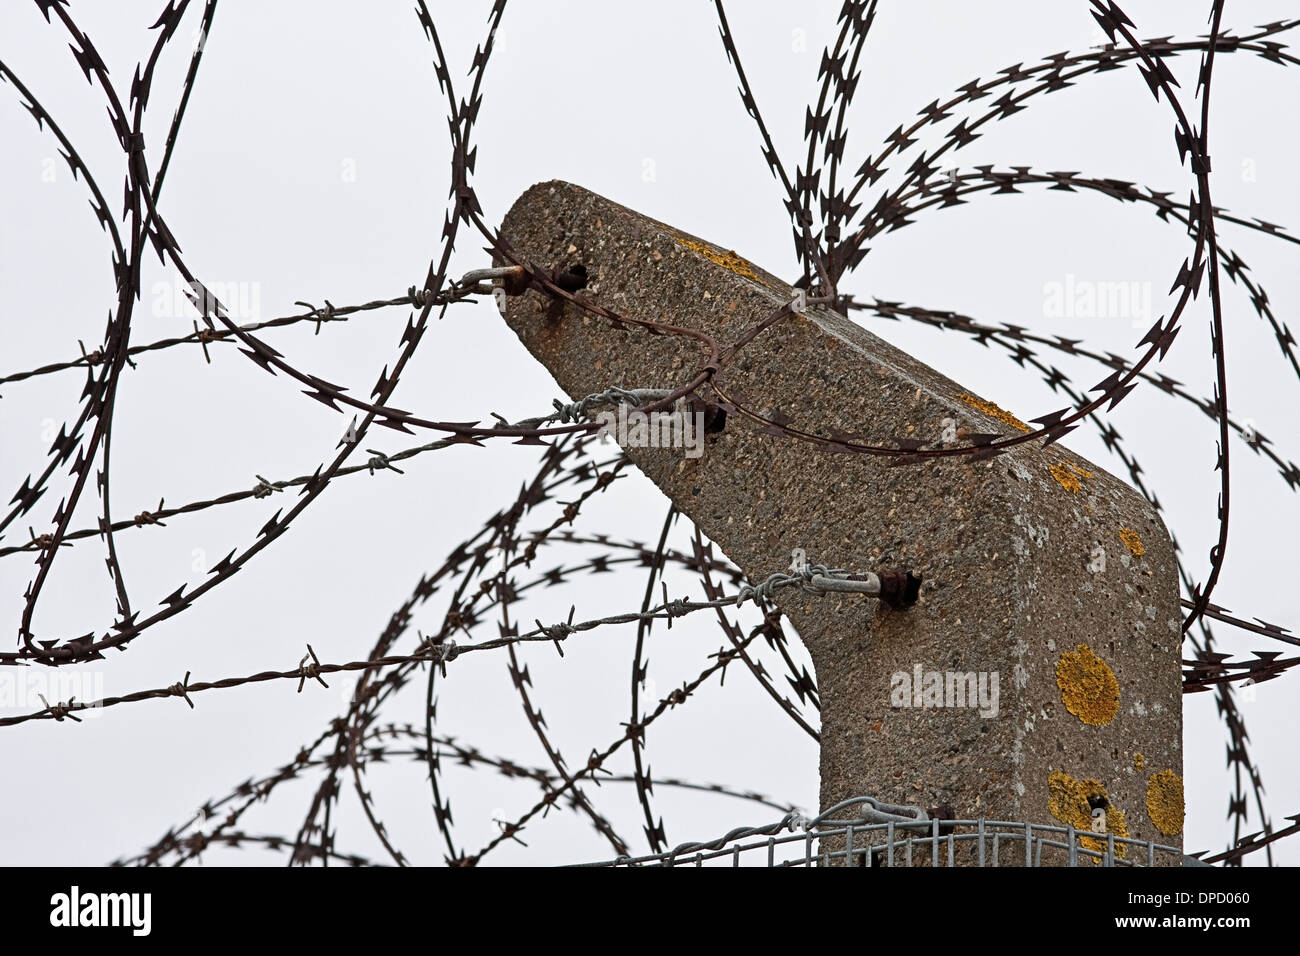 Razor and barbed wire security fence - Stock Image